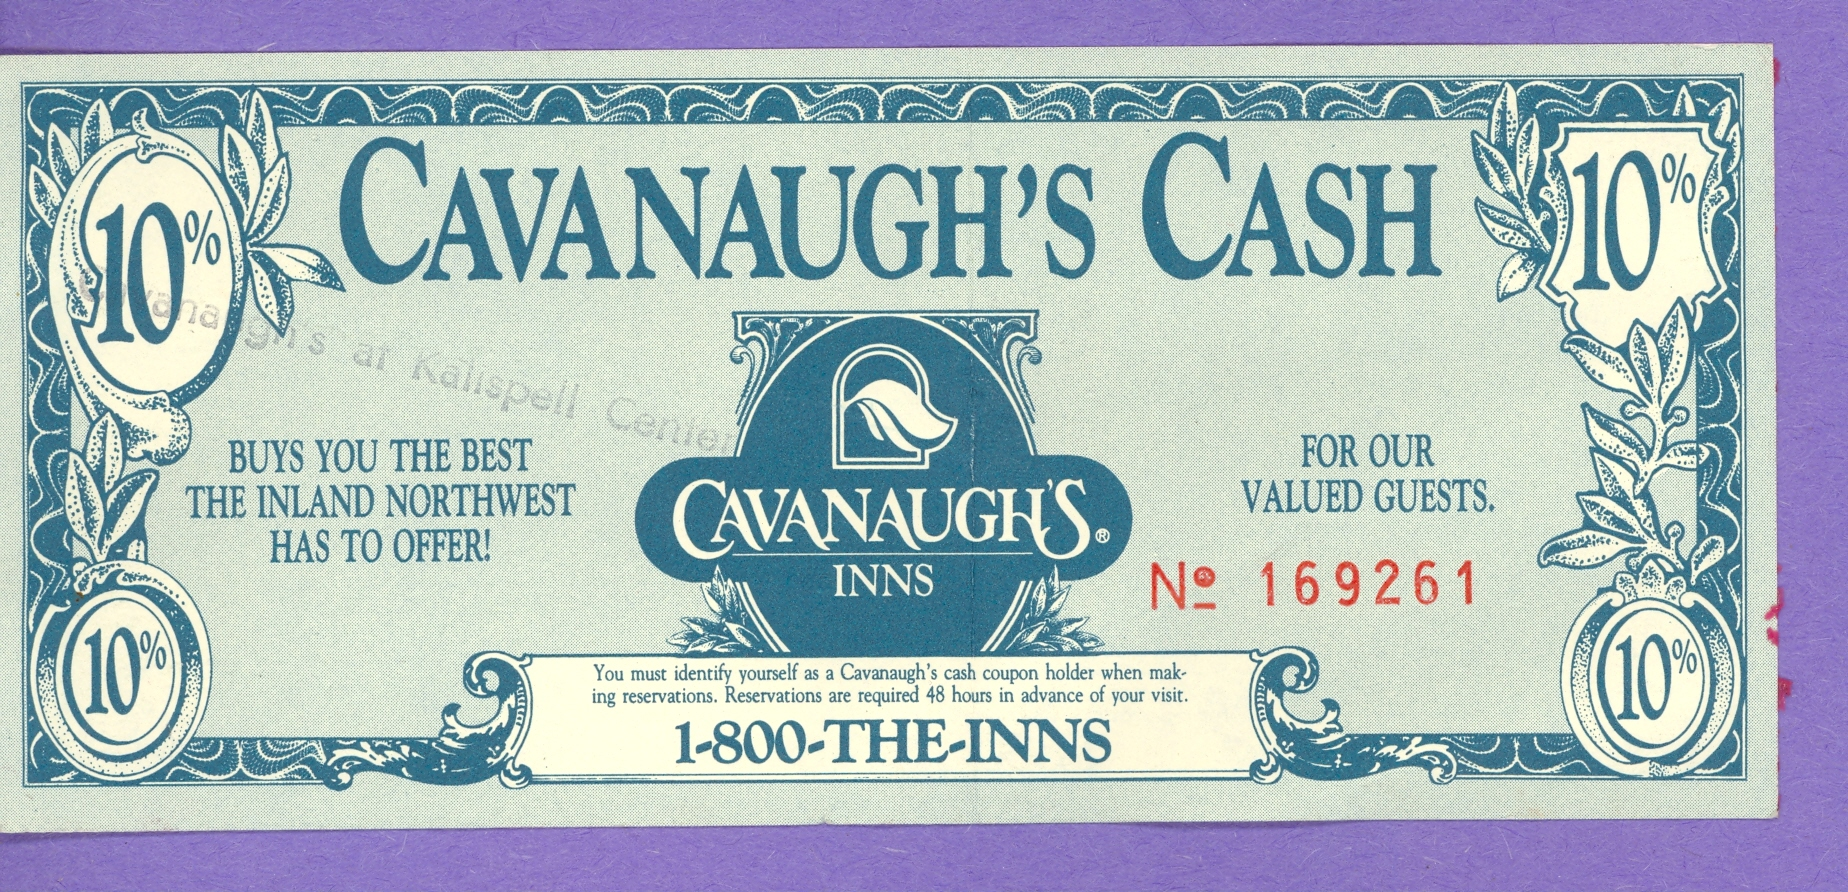 1990 Cavanaugh's Cash 10% off at Cavanaugh's Inns